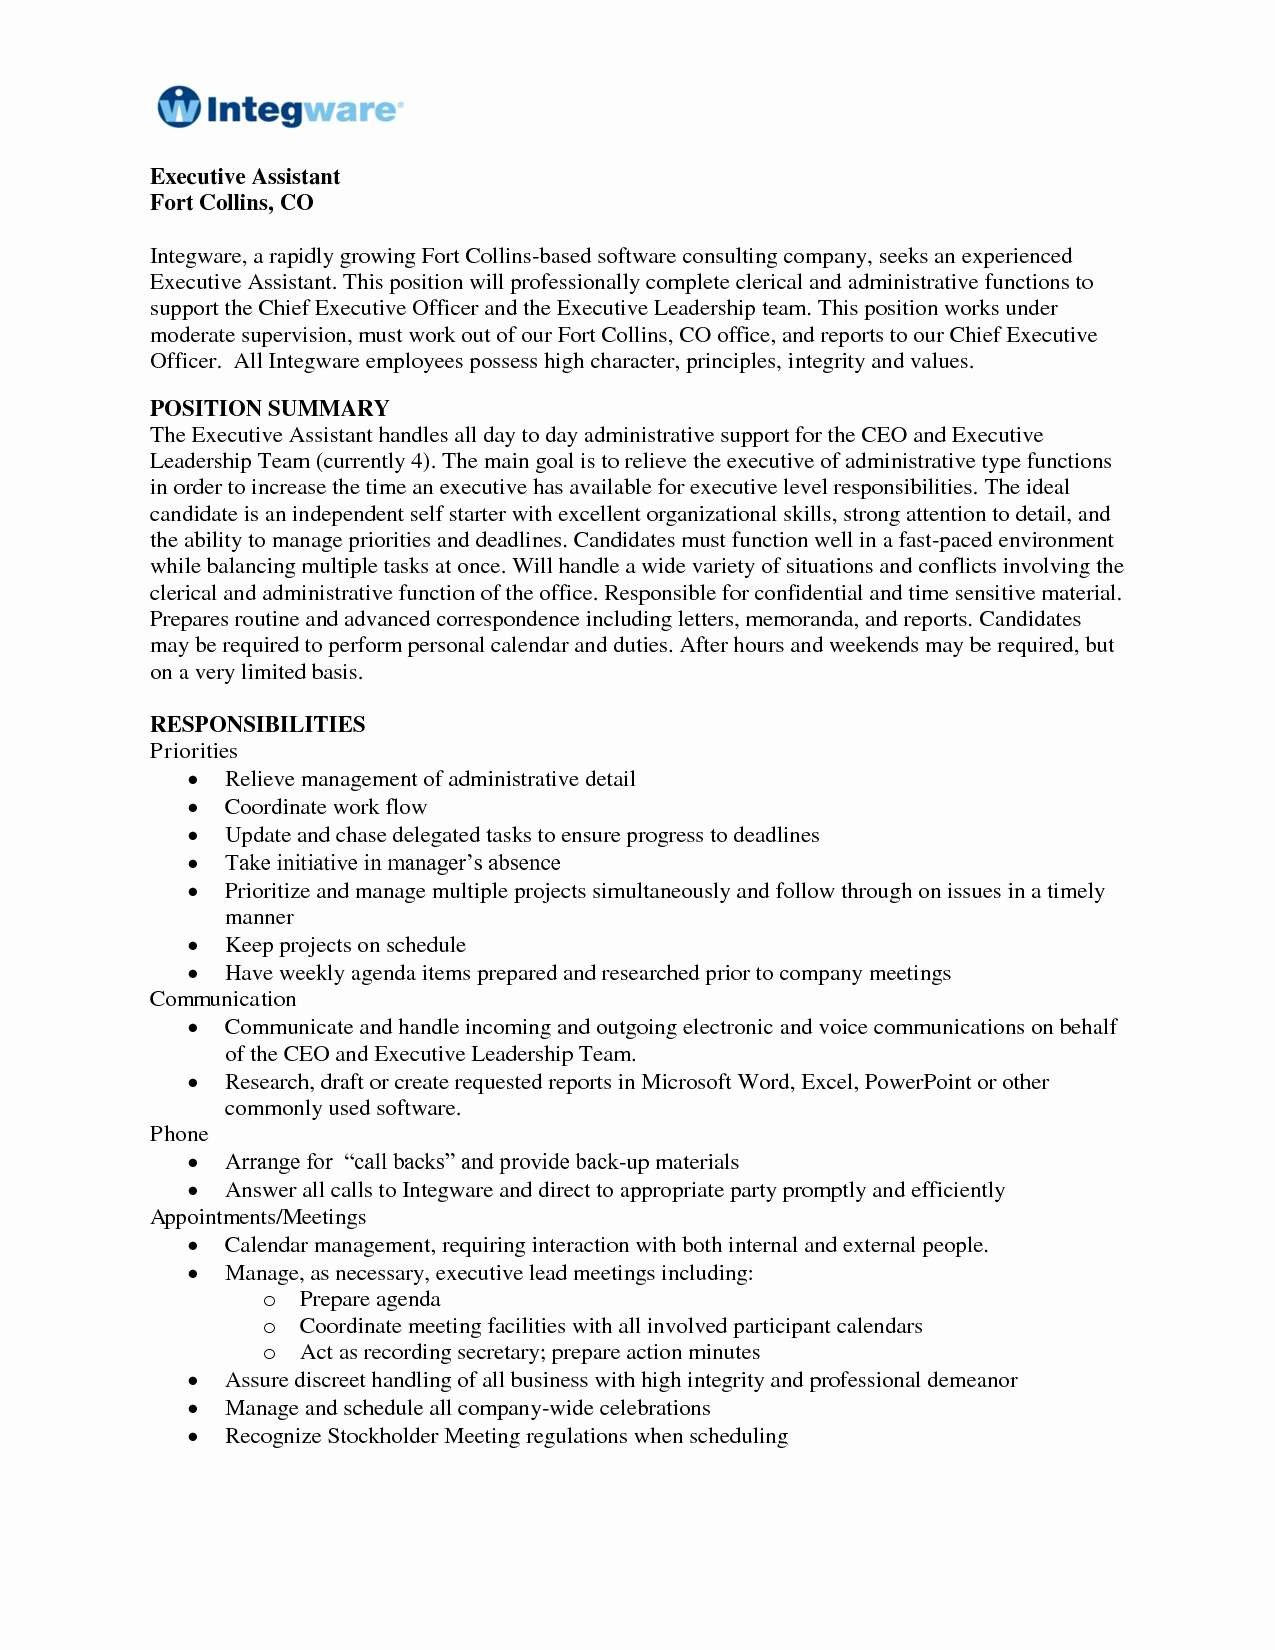 Collaborate Synonym - 23 Collaborate Synonym Resume